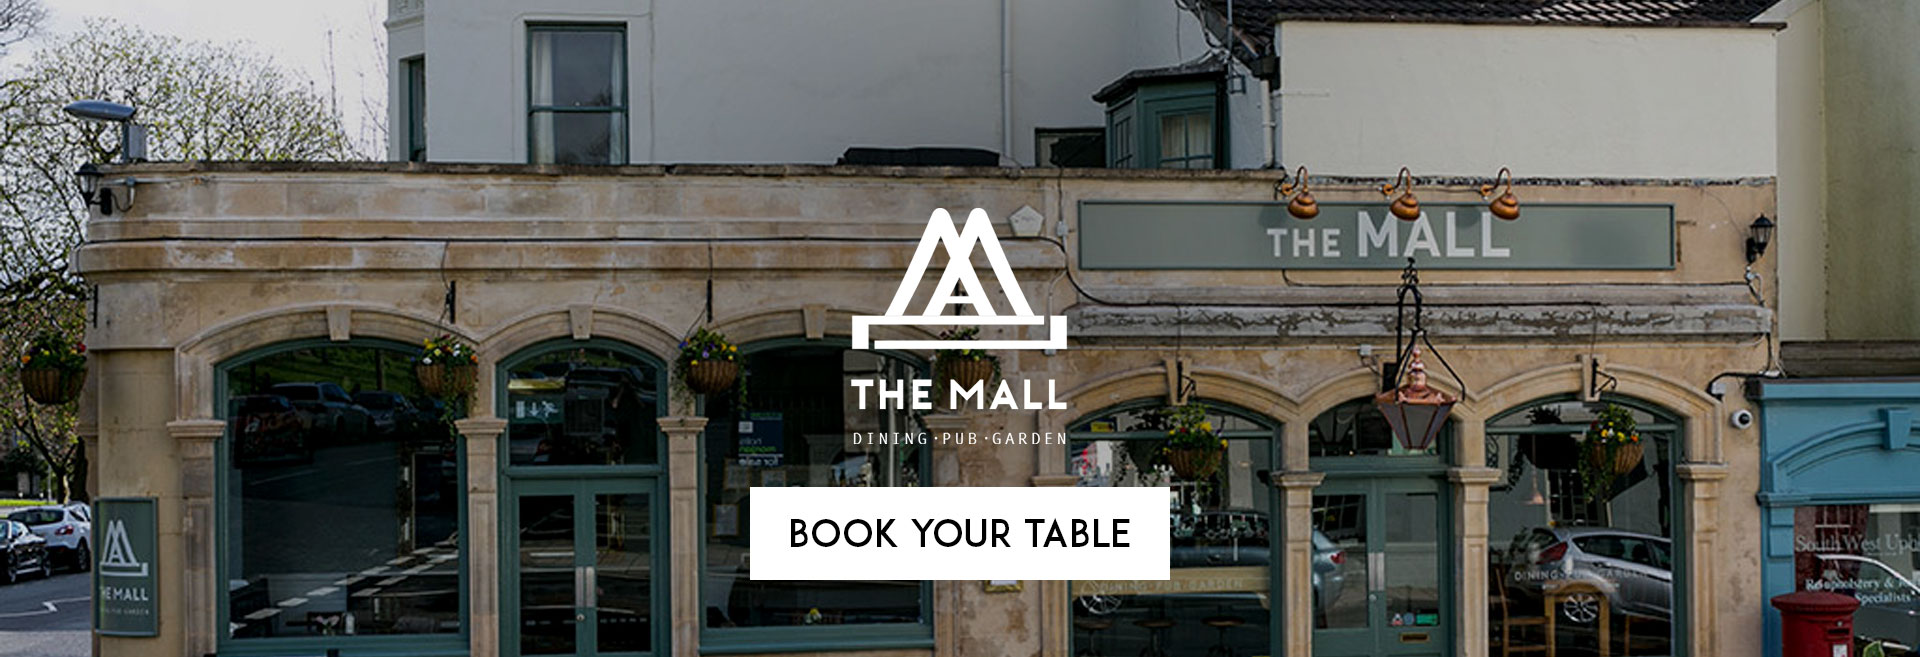 Book Your Table at The Mall